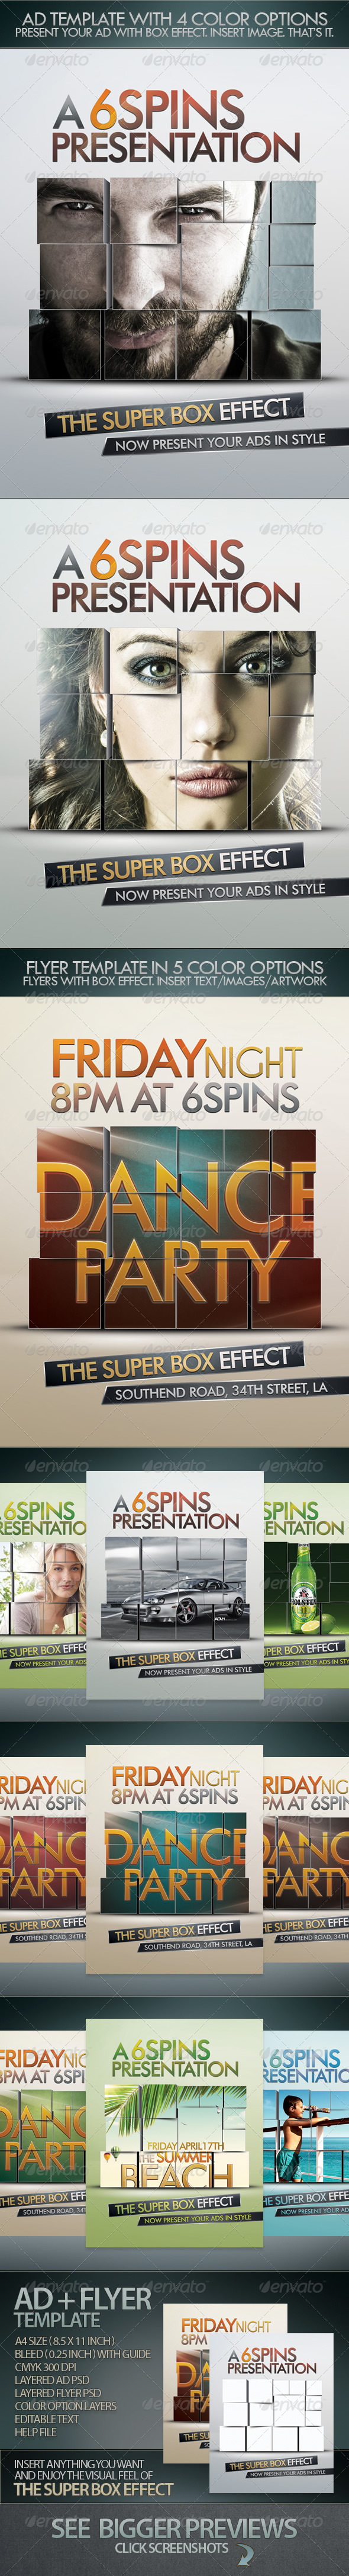 Ad And Party Flyer Template With Super Box Effect - Corporate Flyers